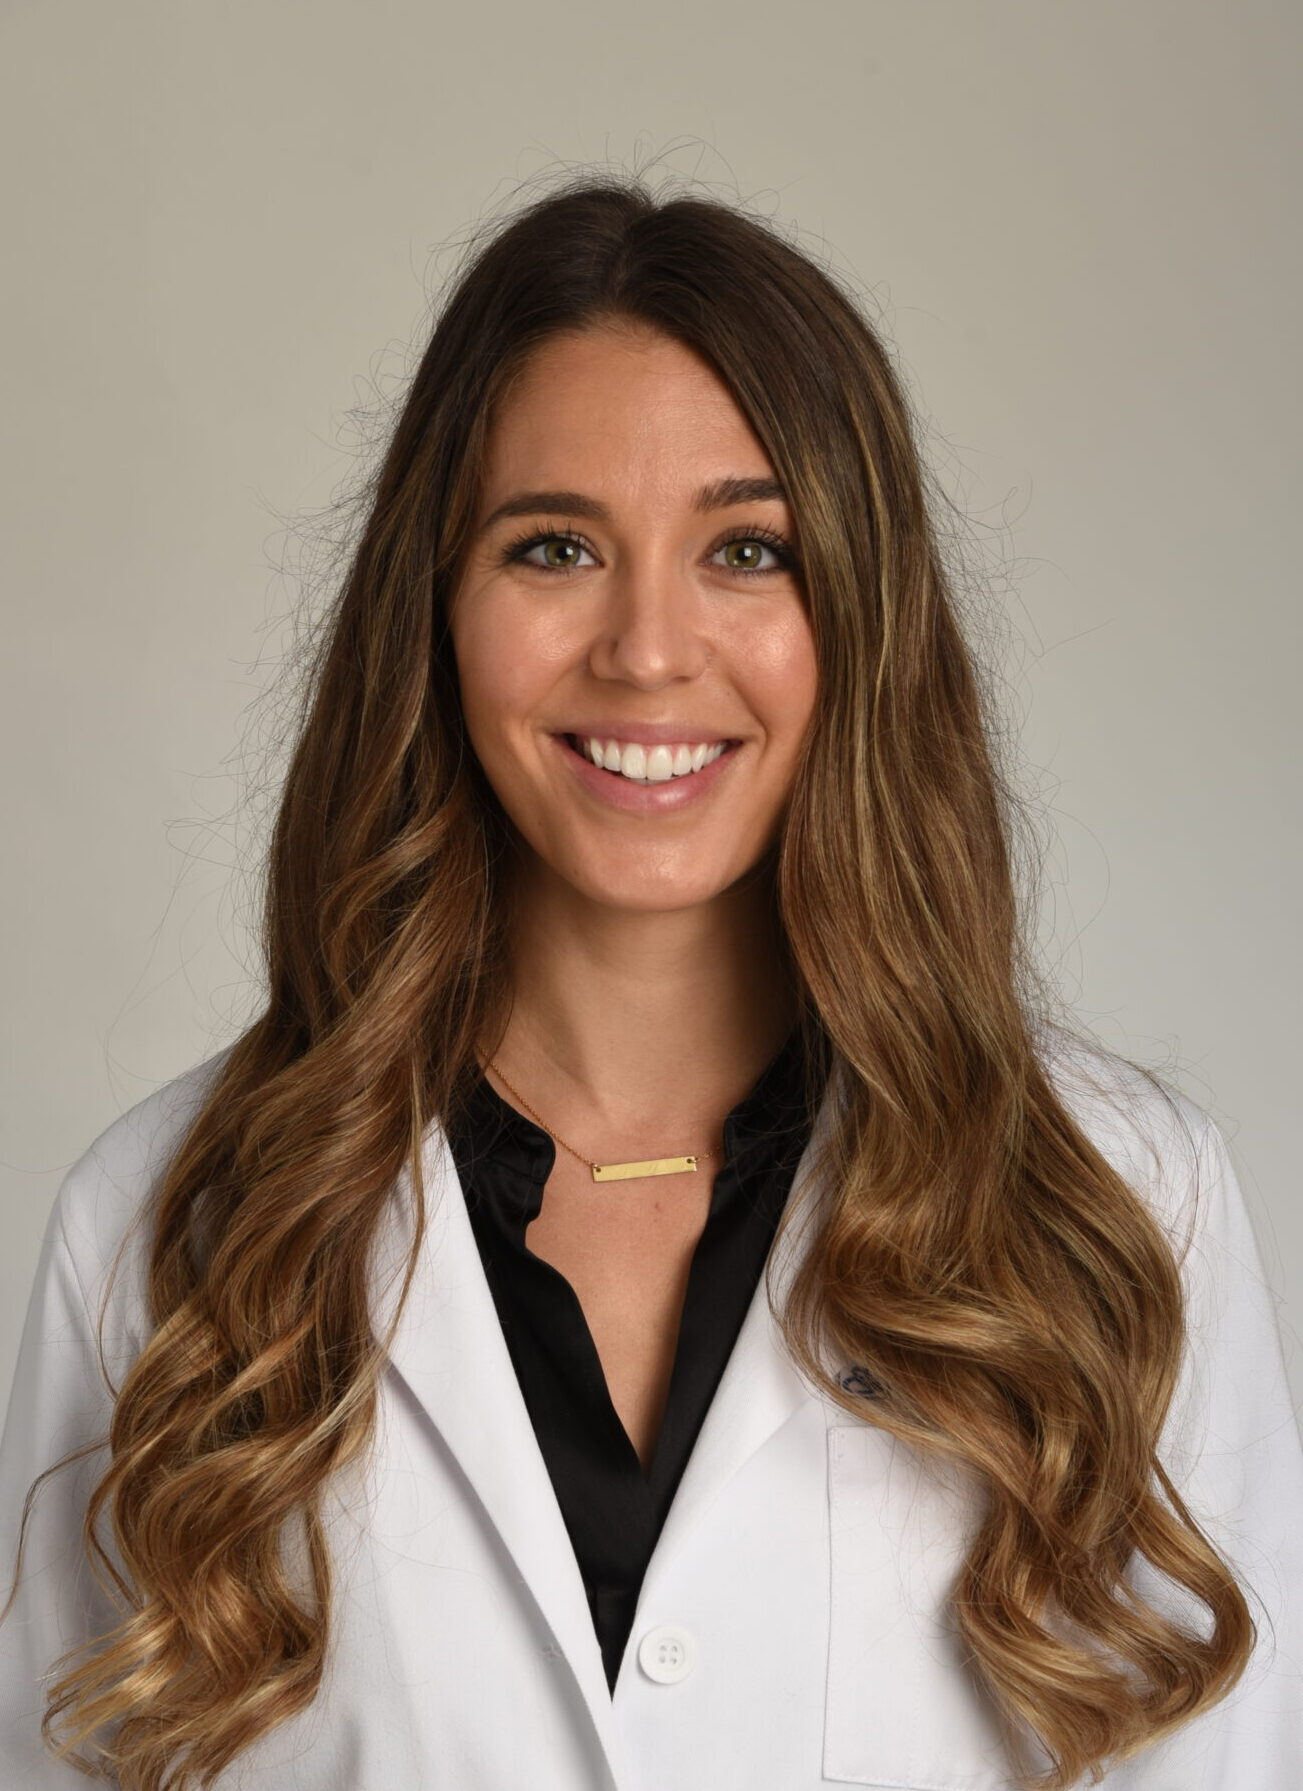 image of doctor Kendall Caminiti